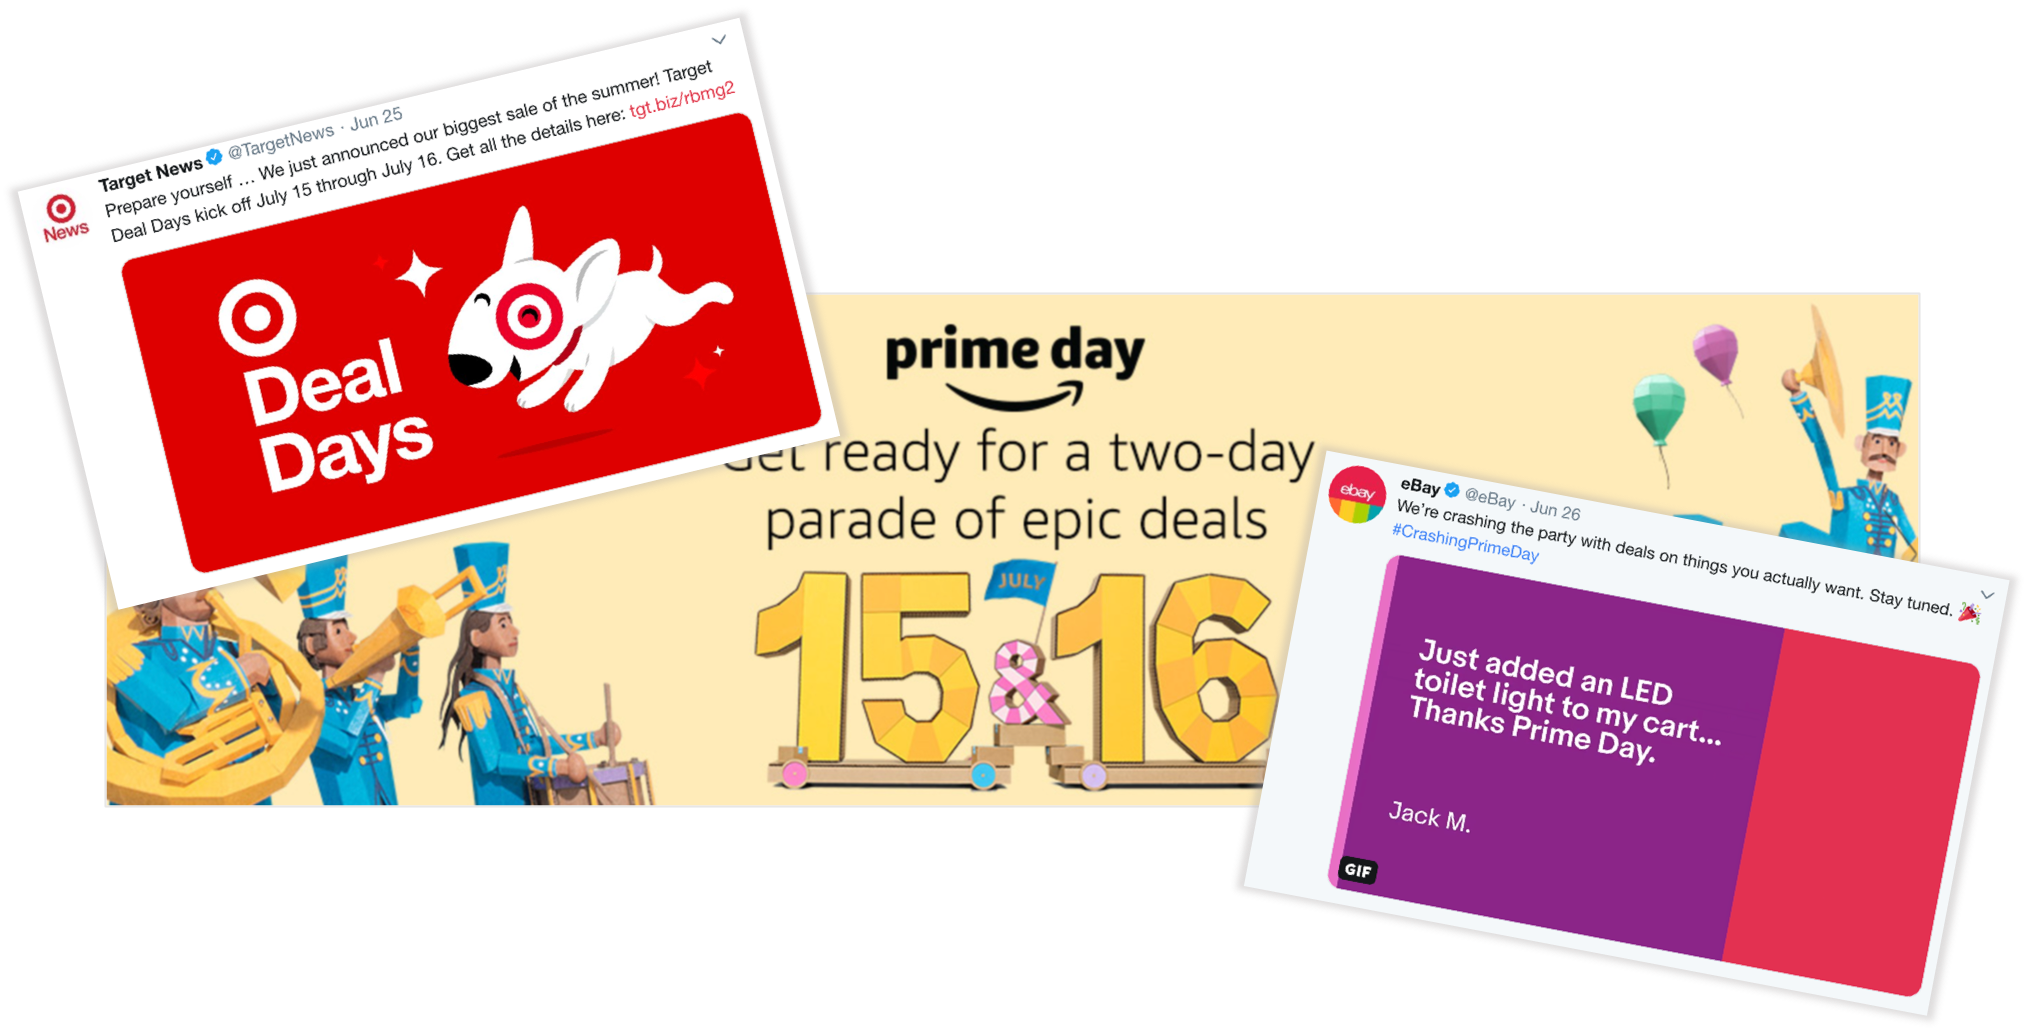 example of prime day sales by ebay and target